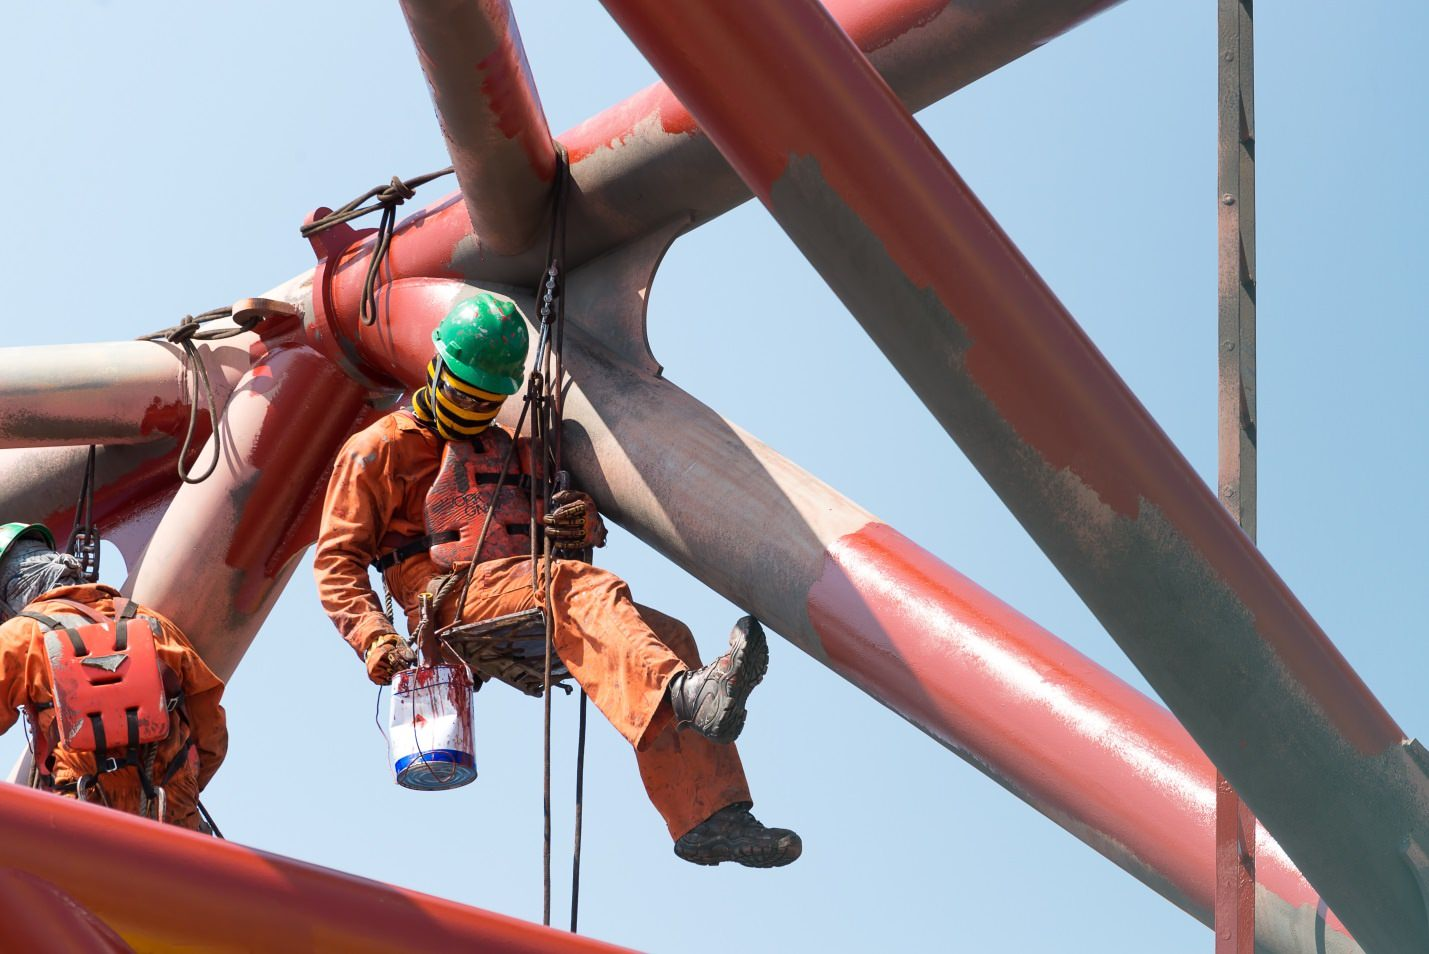 Worker wearing coveralls, hard hat, boots, and gloves suspended next to metal bridge structure